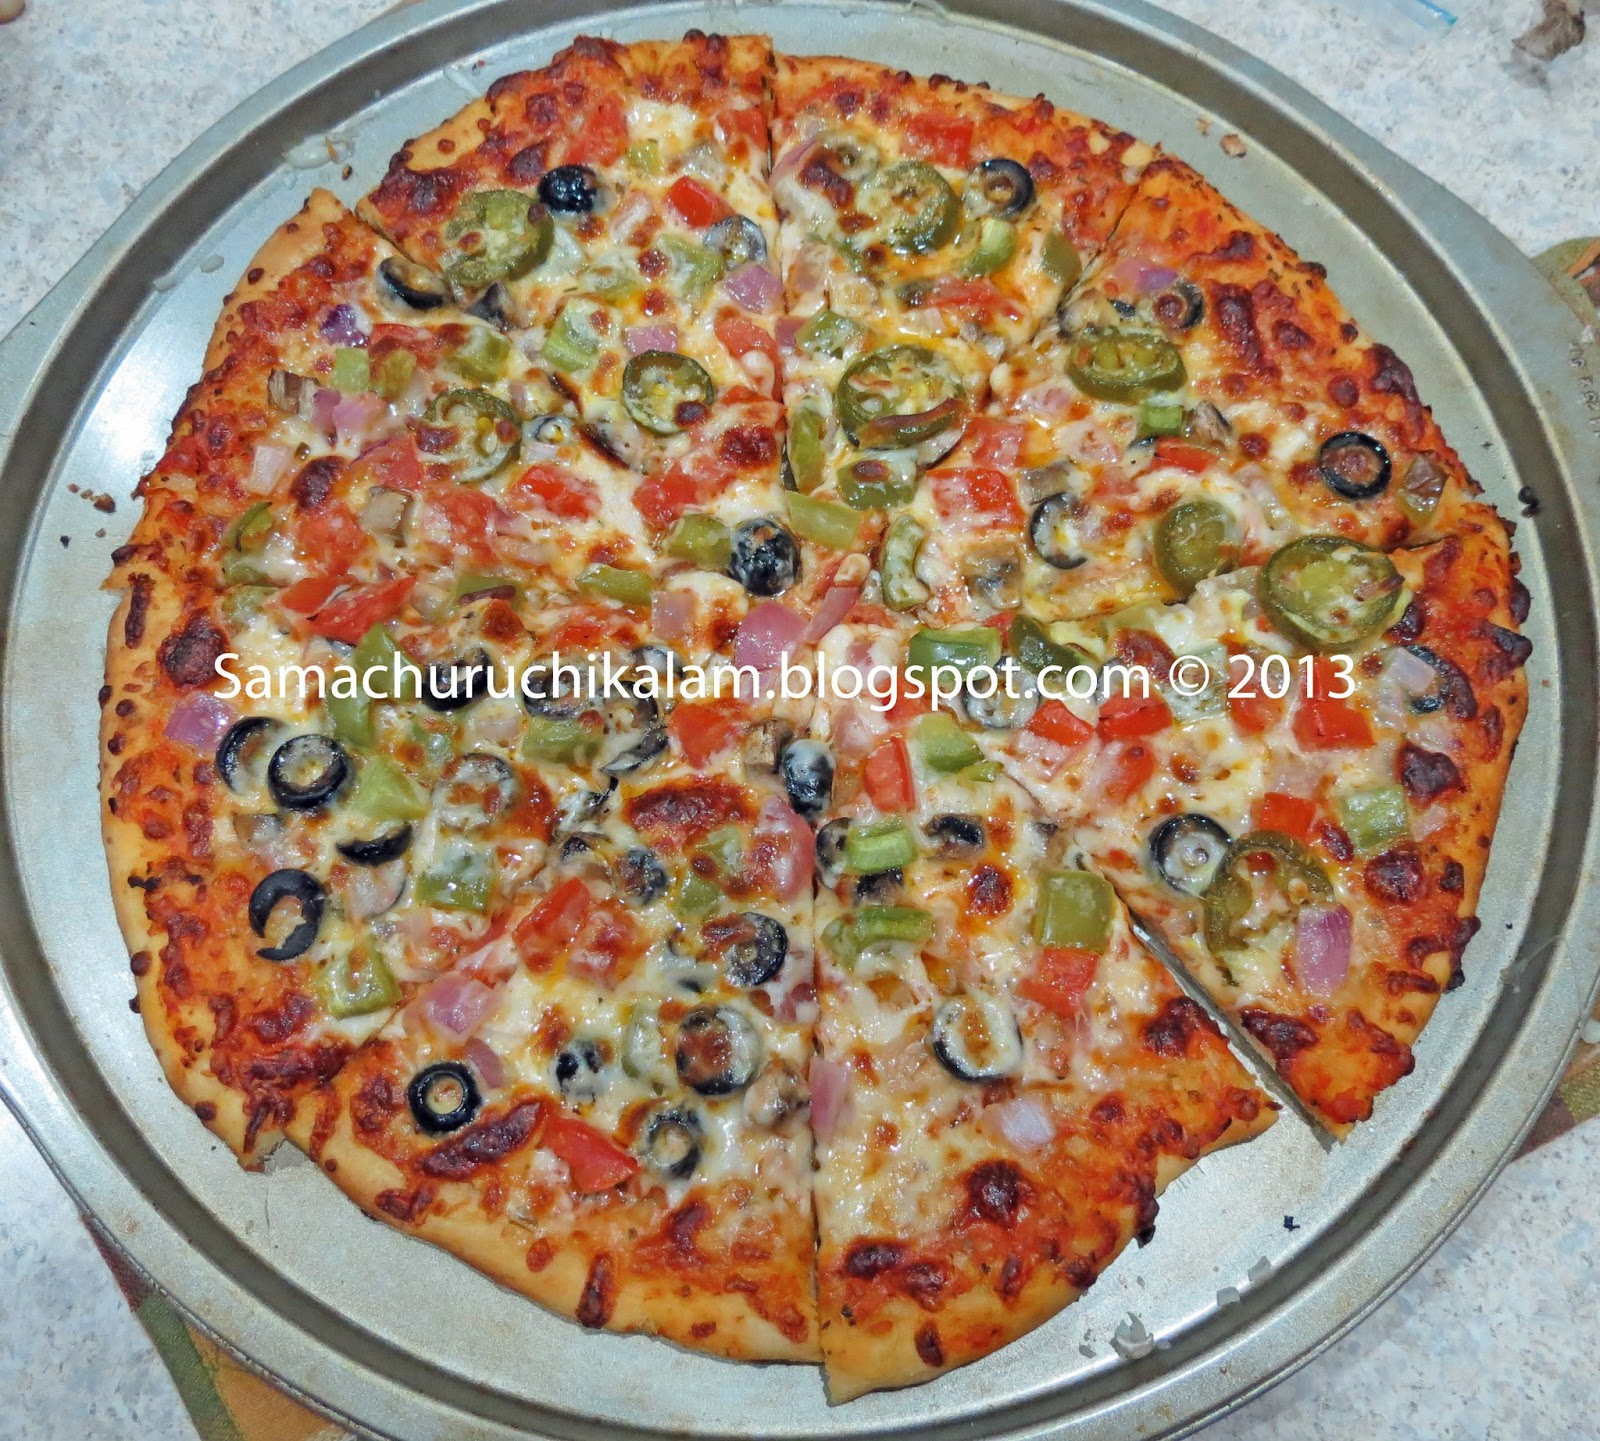 Recipes from Manju's kitchen: New York Style Pizza & Pizza Sauce